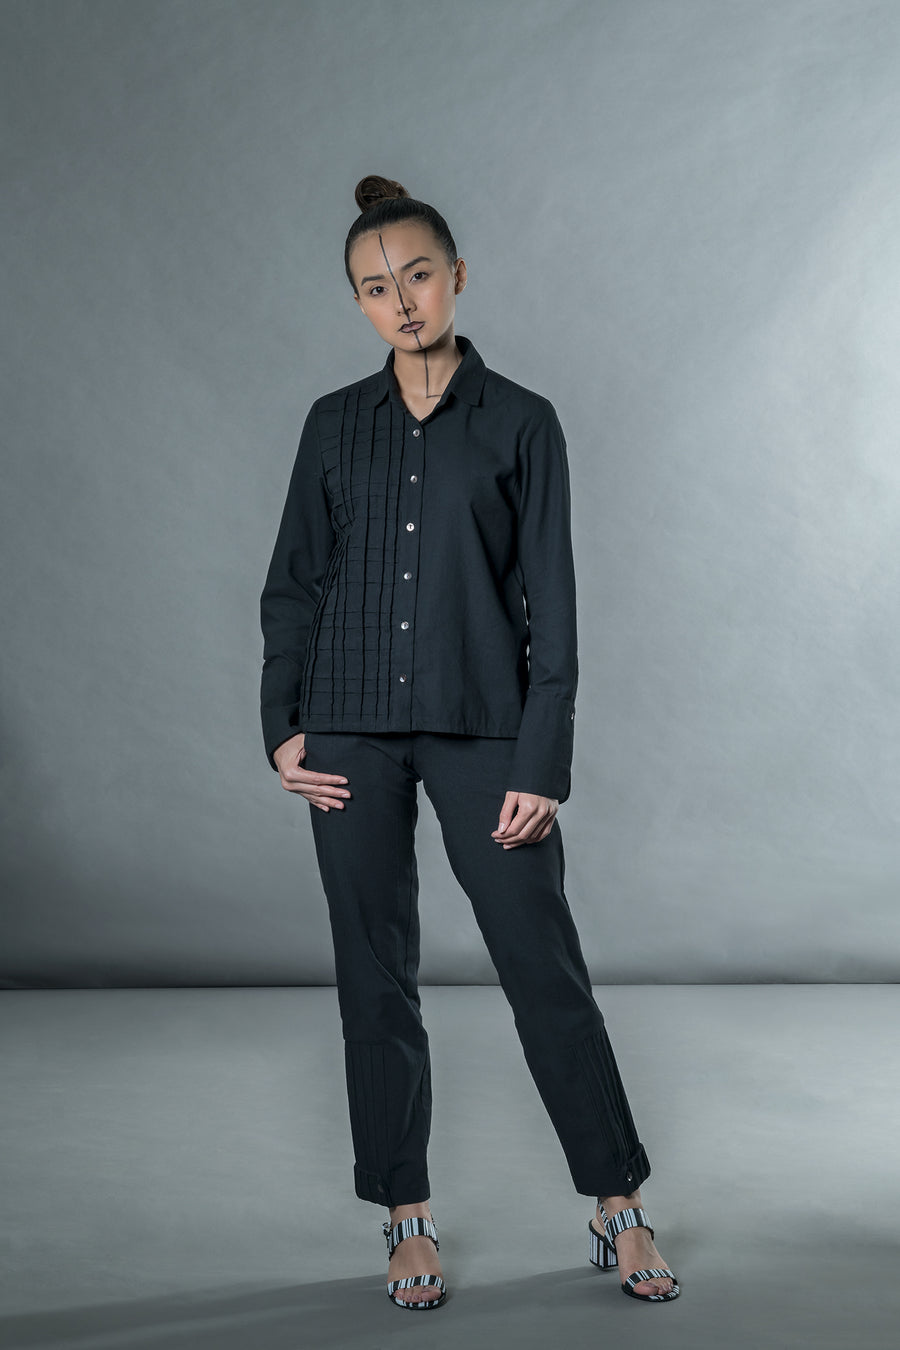 Black Shirt with Cross Pleats - Ethical made fashion - onlyethikal